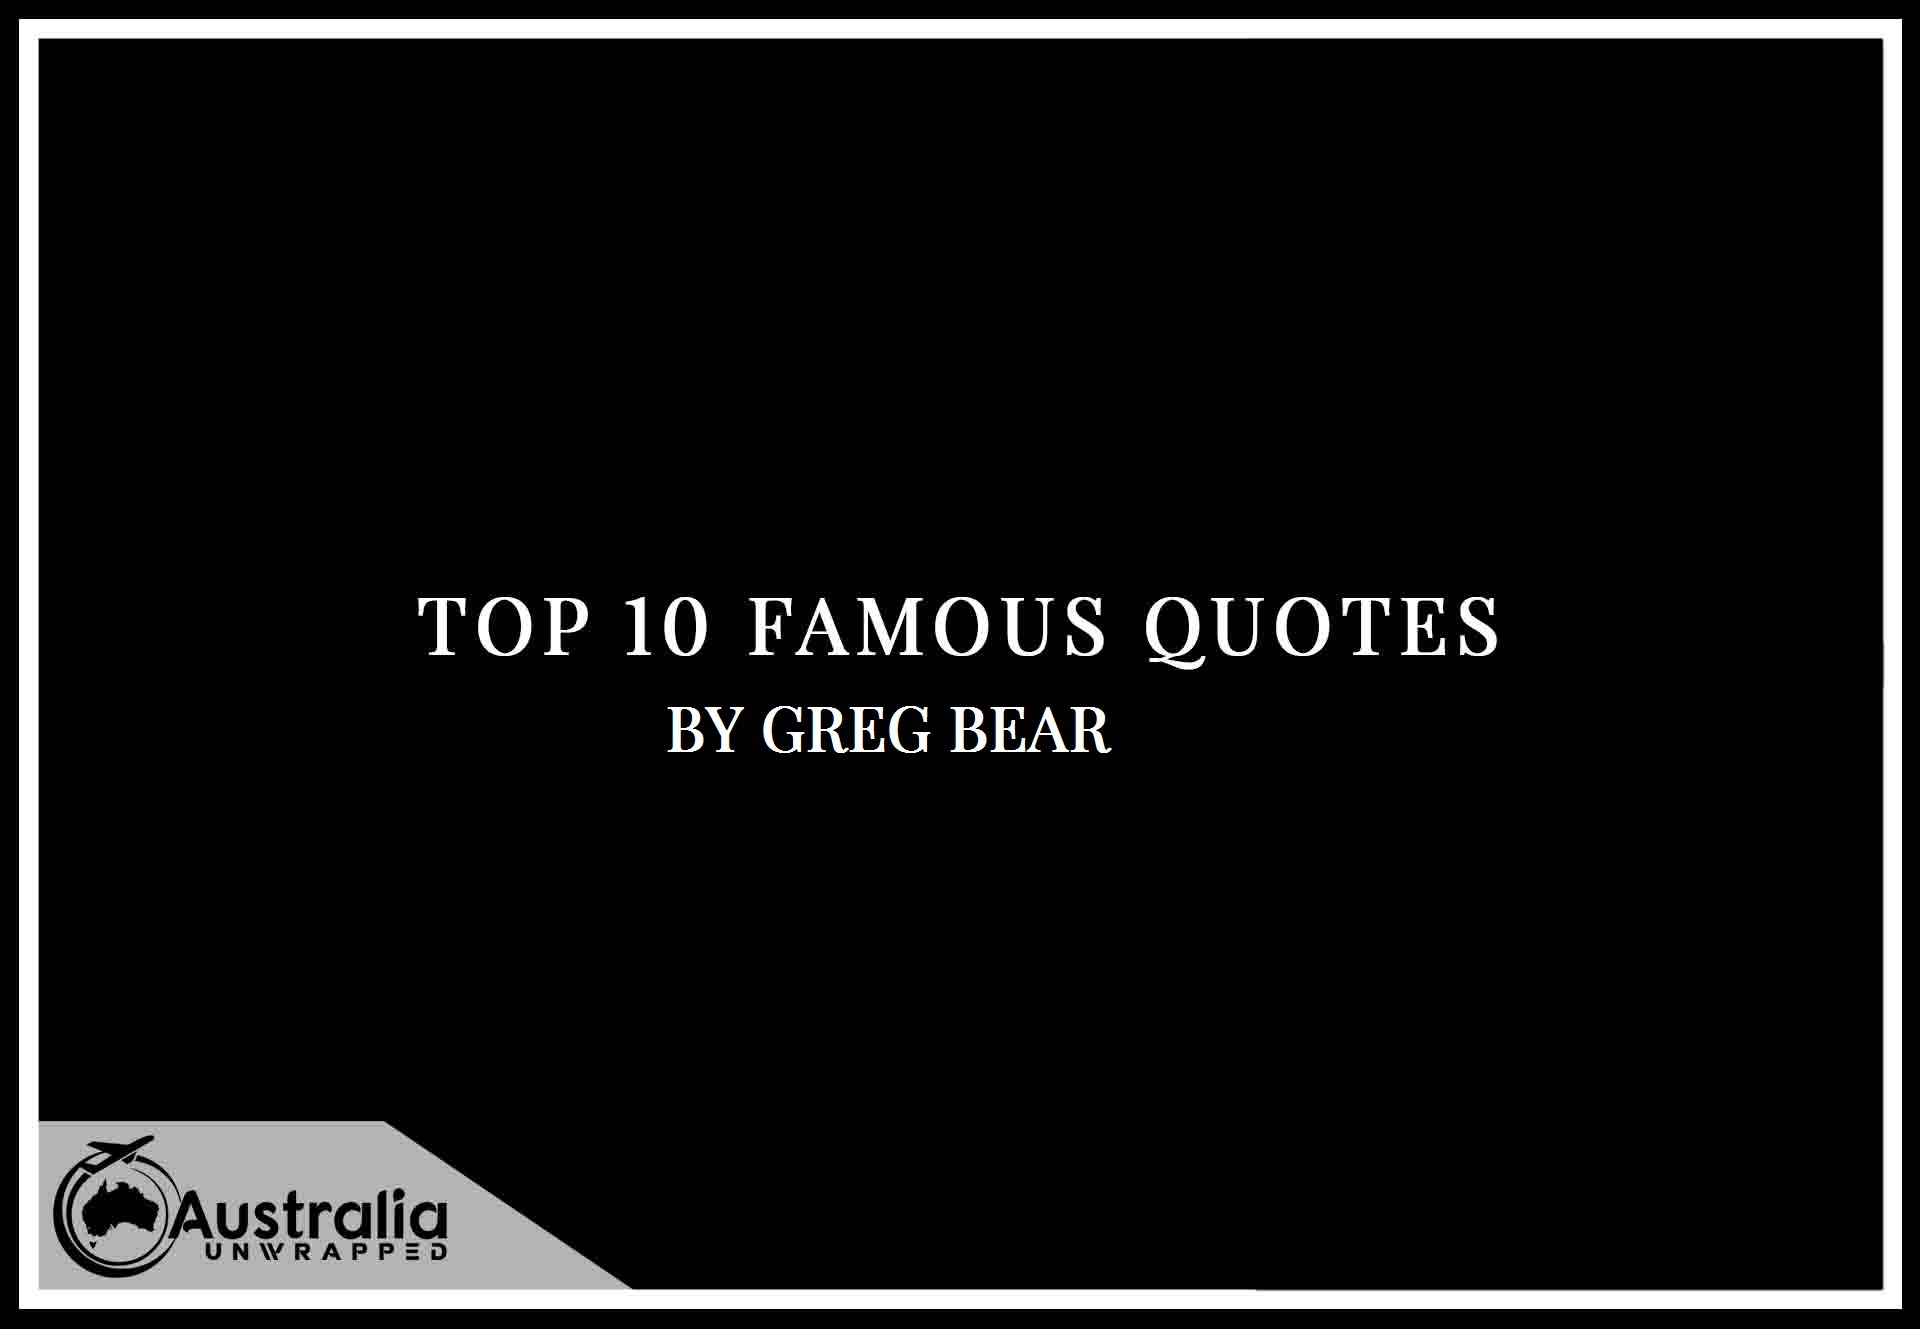 Greg Bear's Top 10 Popular and Famous Quotes